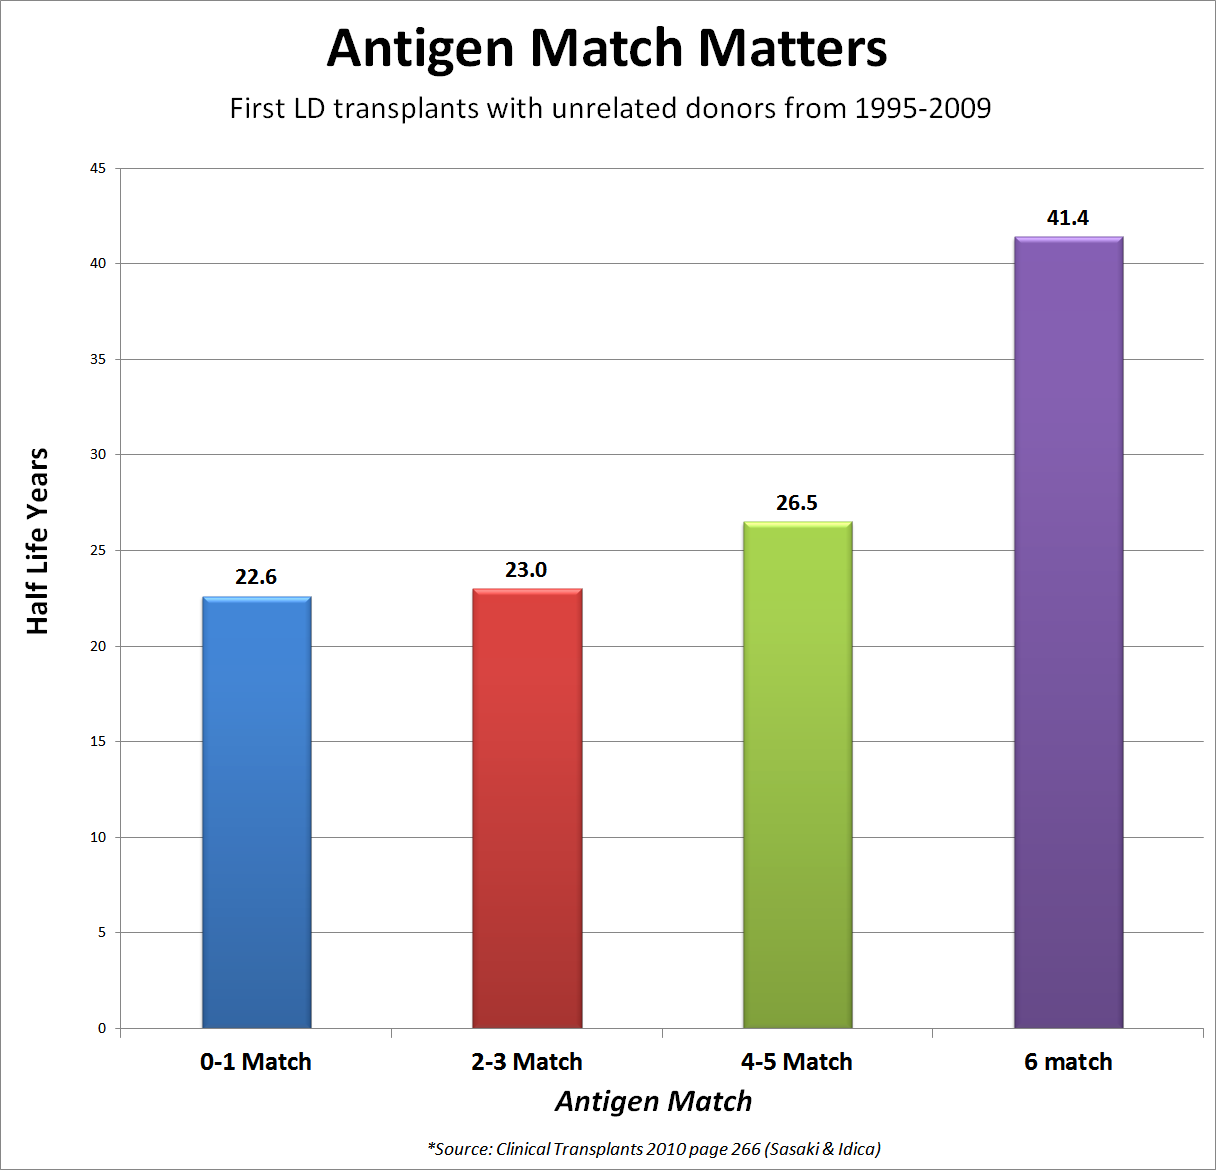 Antigen Match Between Donor and Recipient Matters